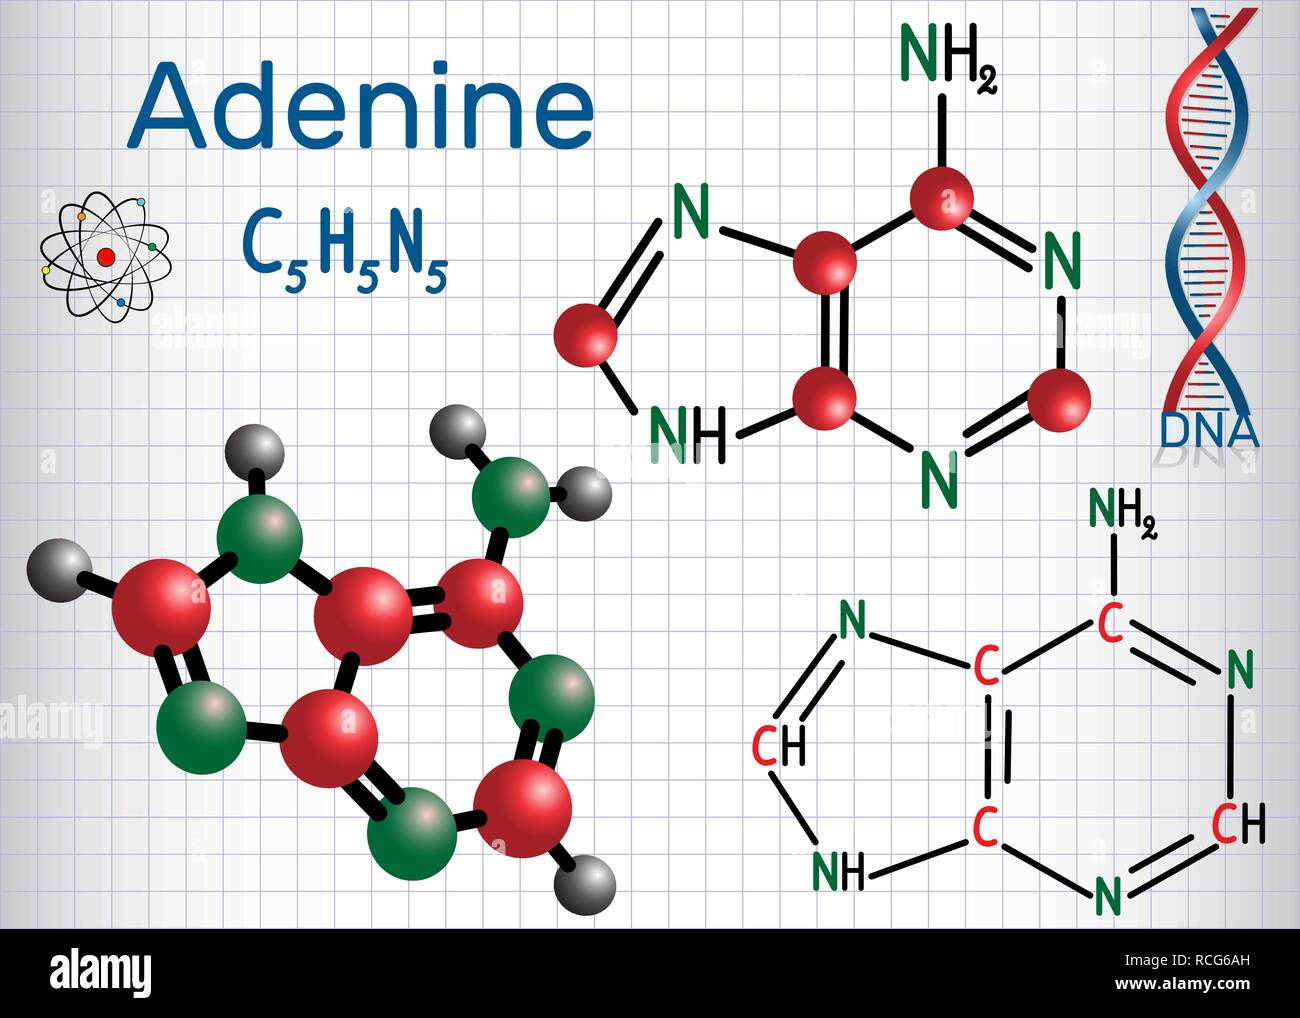 Adenine (A, Ade) - purine nucleobase, fundamental unit of the genetic code in DNA and RNA. Structural chemical formula and molecule model. Sheet of pa - Stock Image